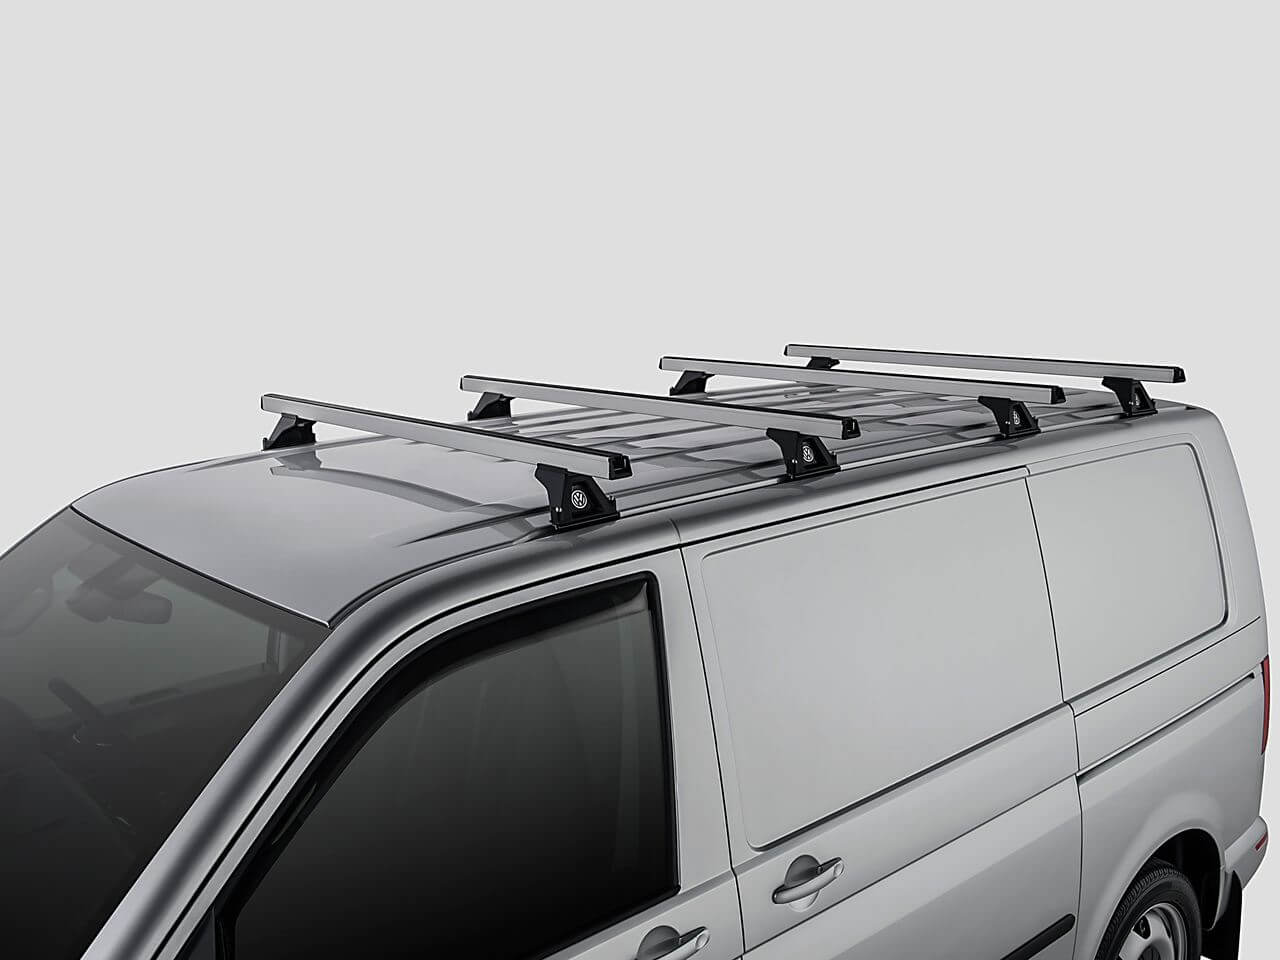 Commercial roof bars Transport Image